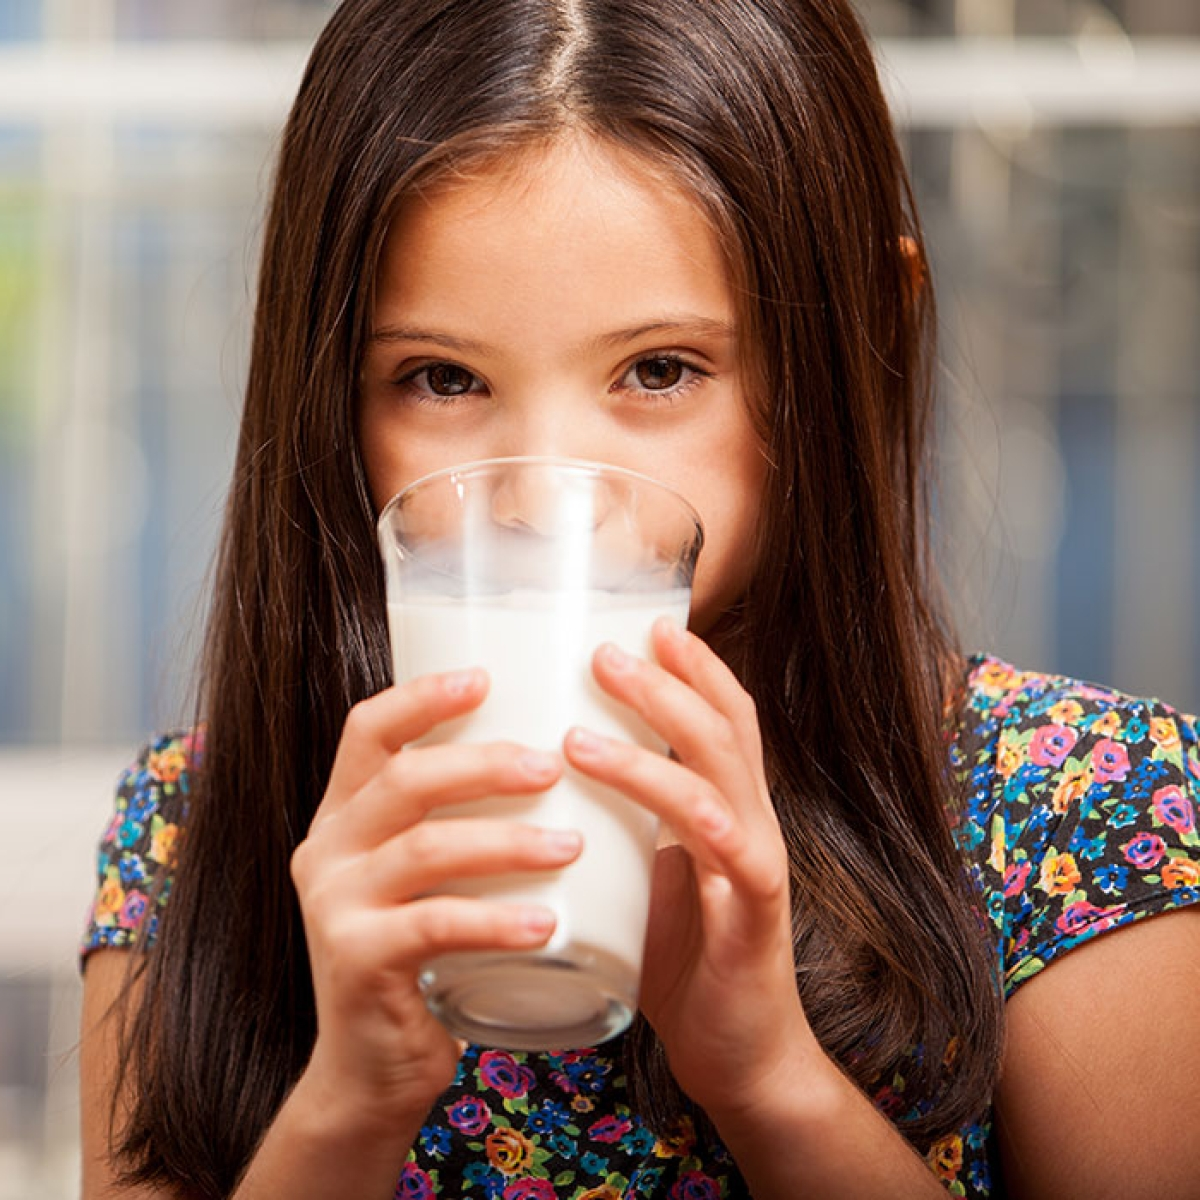 Parents, replace cow's milk with whole milk